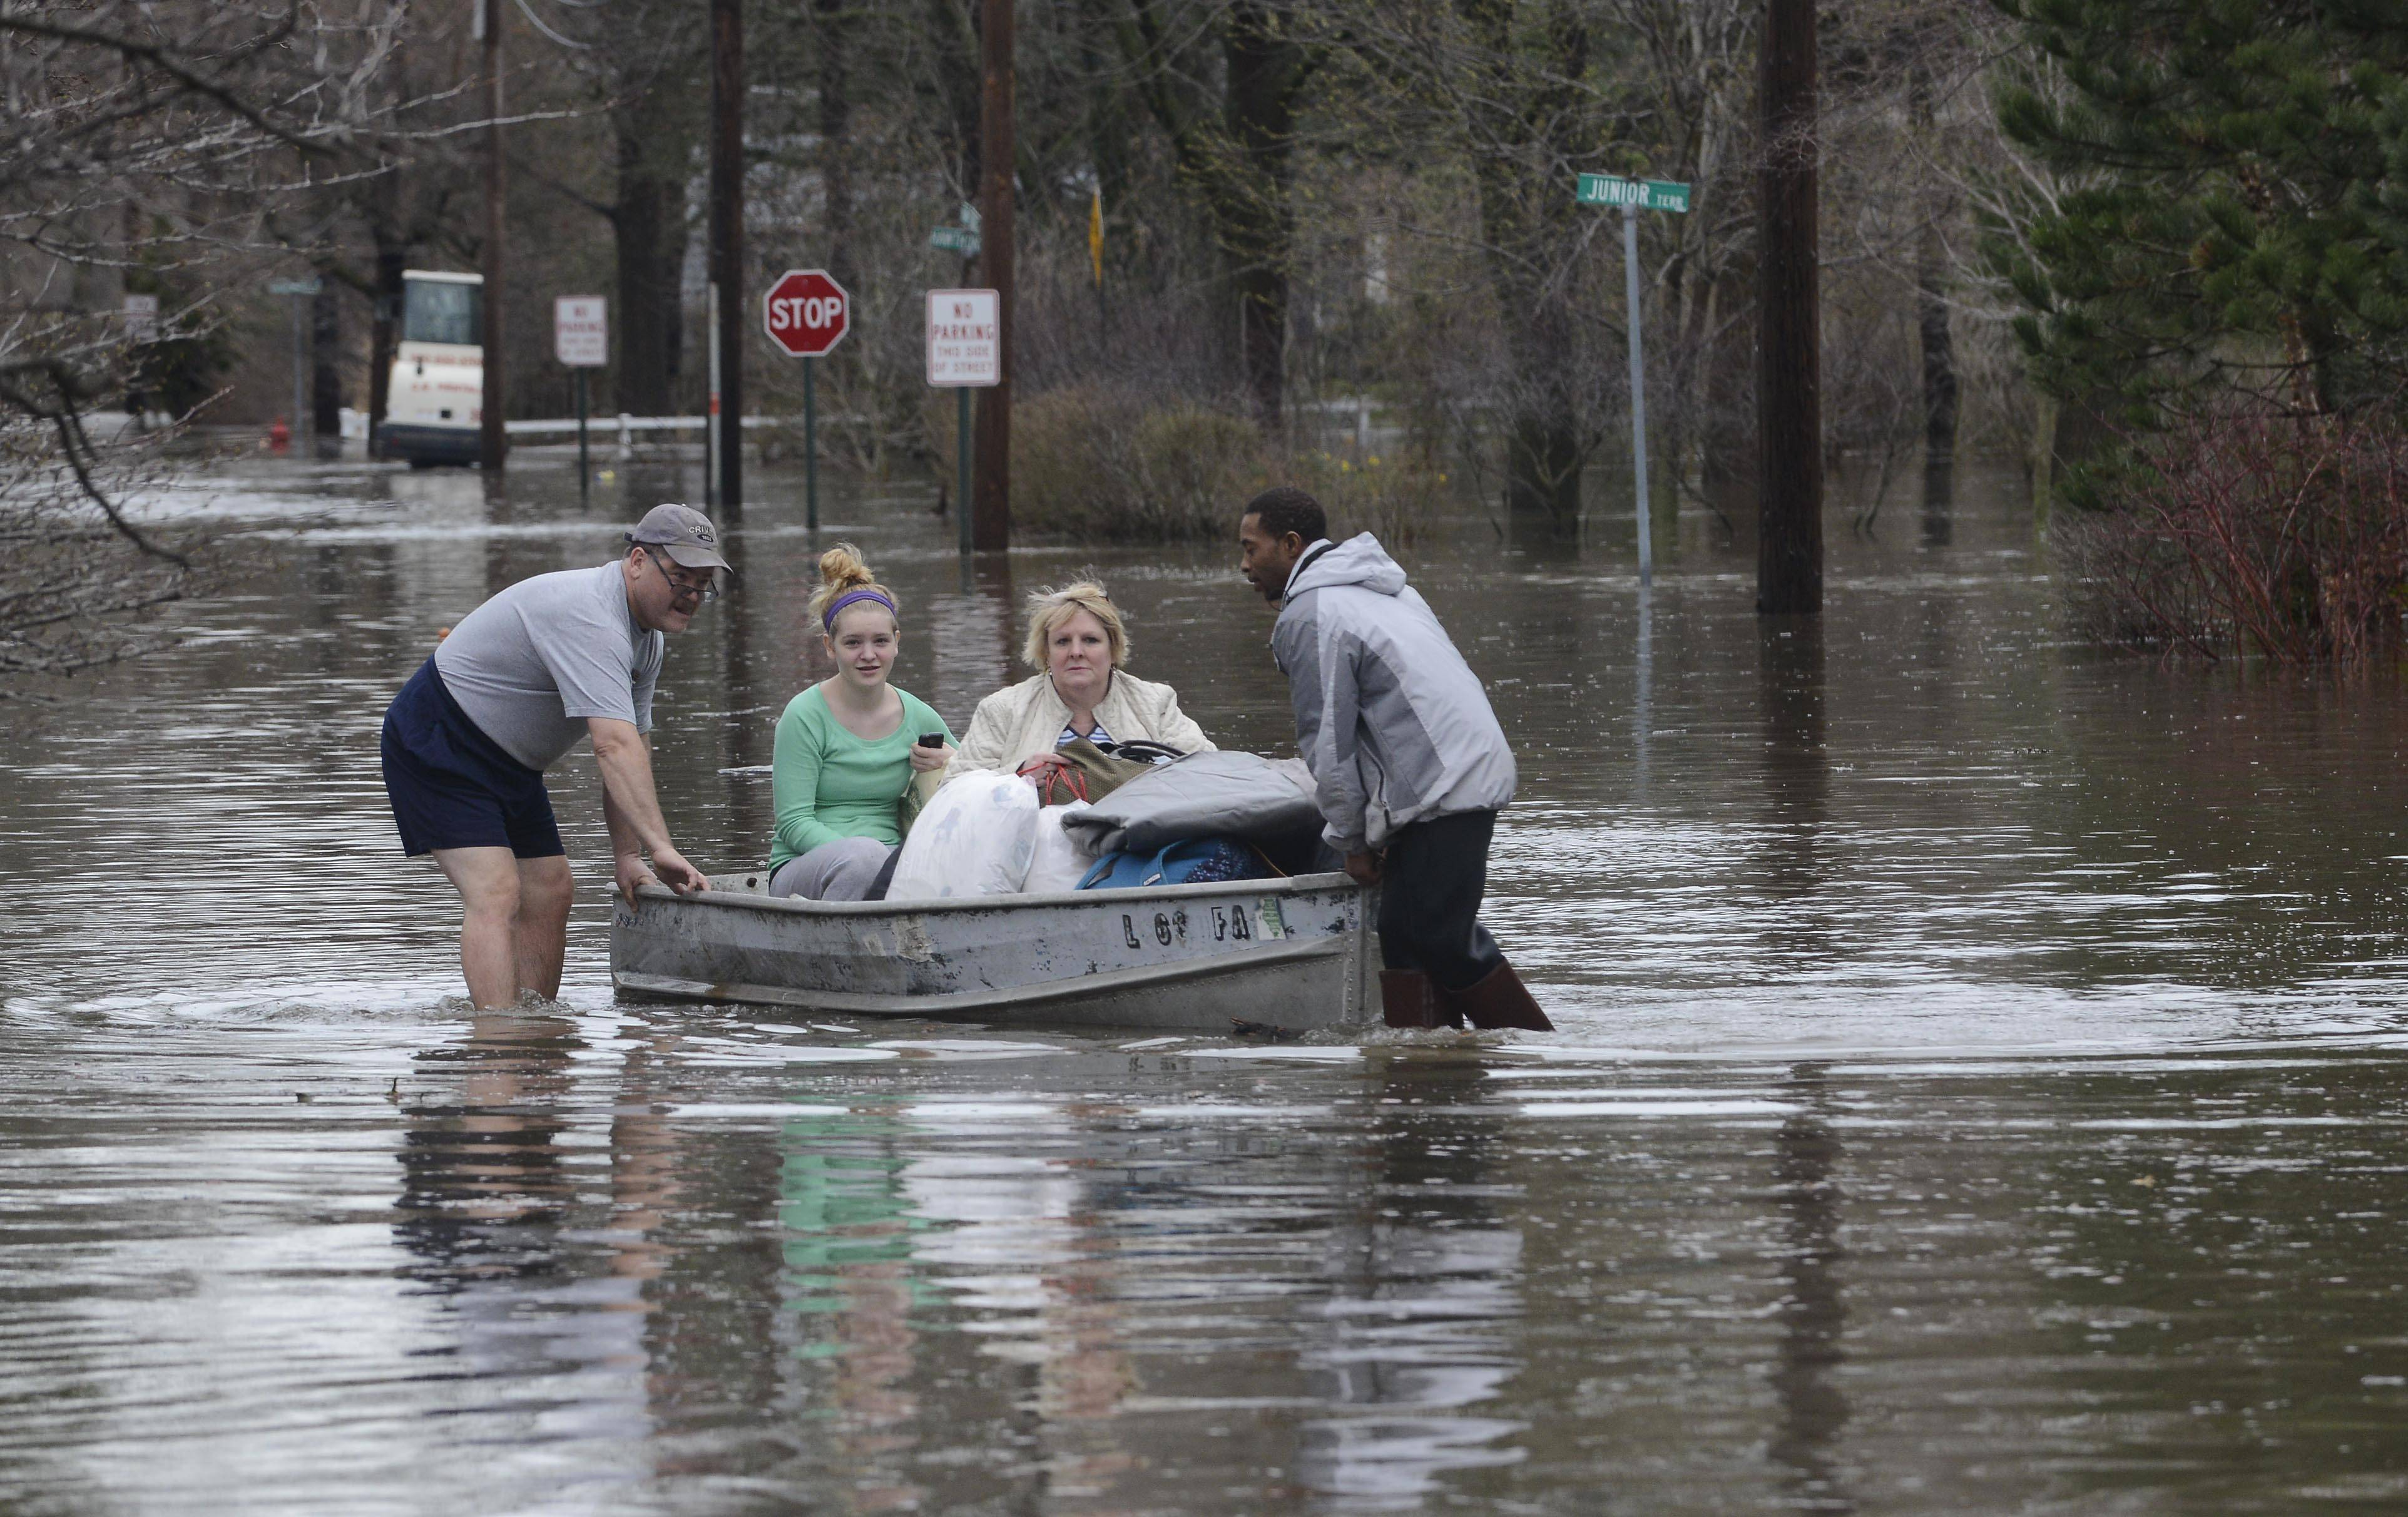 Ted Tworek, left, helps his daughter, Alison, and wife Donna, get to higher ground with the assistance of Antonio Tenner in the flooded Big Bend neighborhood in Des Plaines Thursday as the Des Plaines River continues to rise.